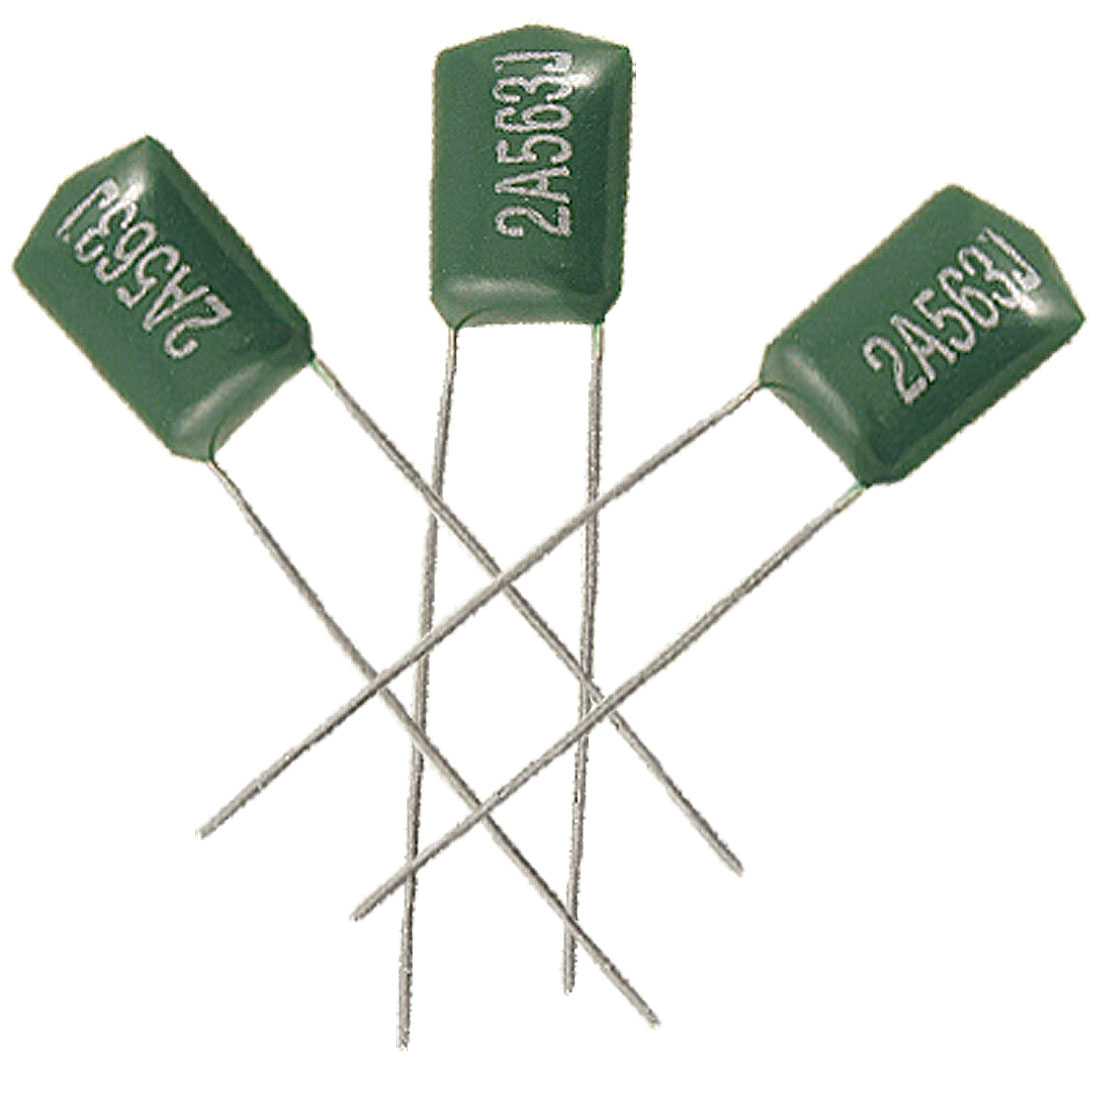 0.056uF 5% 100V Radial Leads Polyester Poly Film Capacitors 100 Pcs